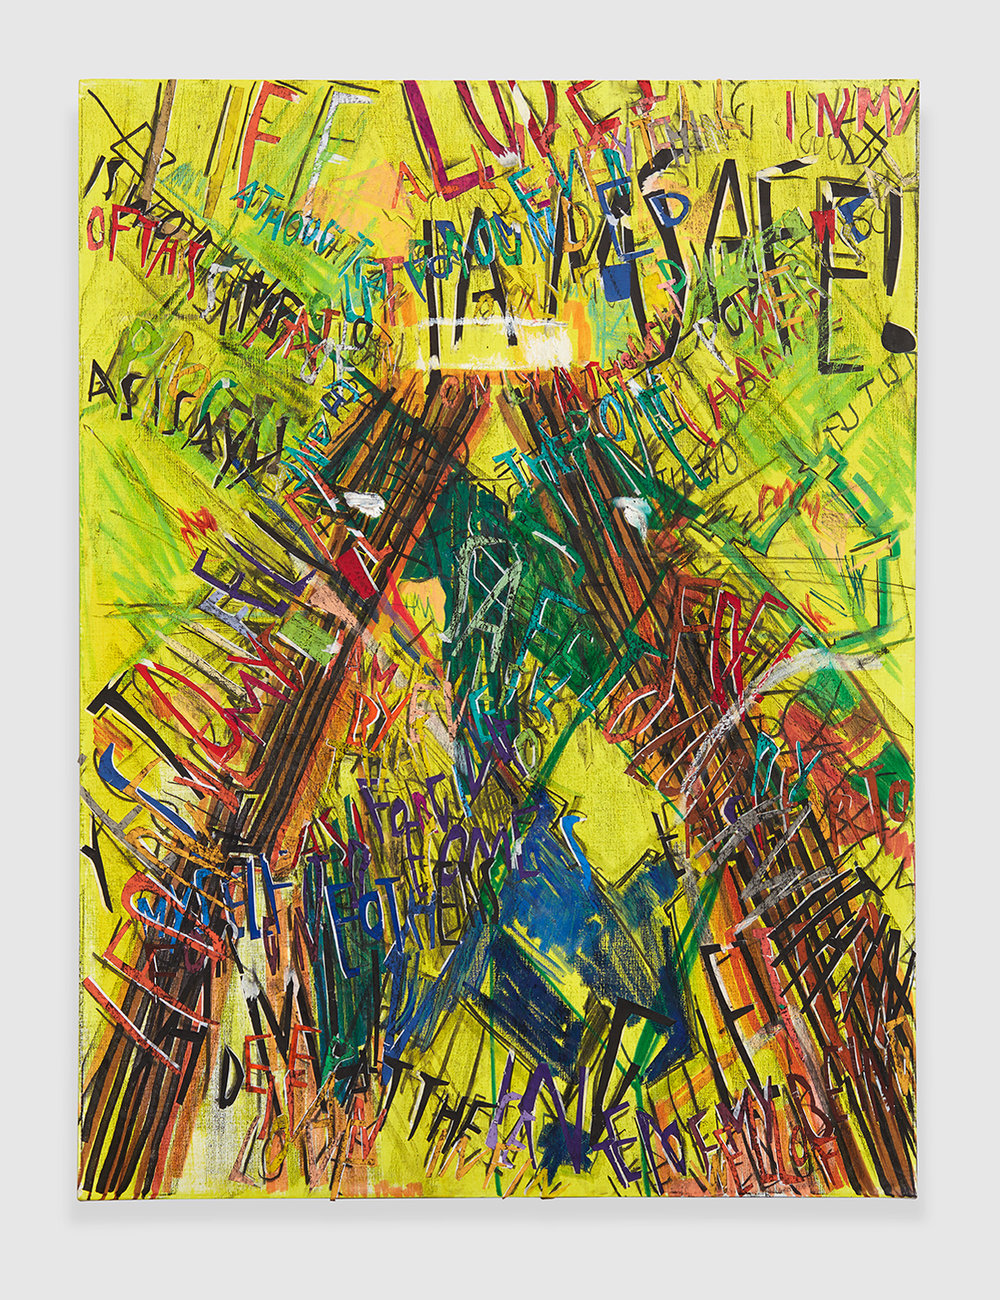 RGB Affirmations (Yellow) , 2018 acrylic, marker, oil stick, oil, charcoal and paper collage on linen 48 x 36 in - 121,9 x 91,4 cm